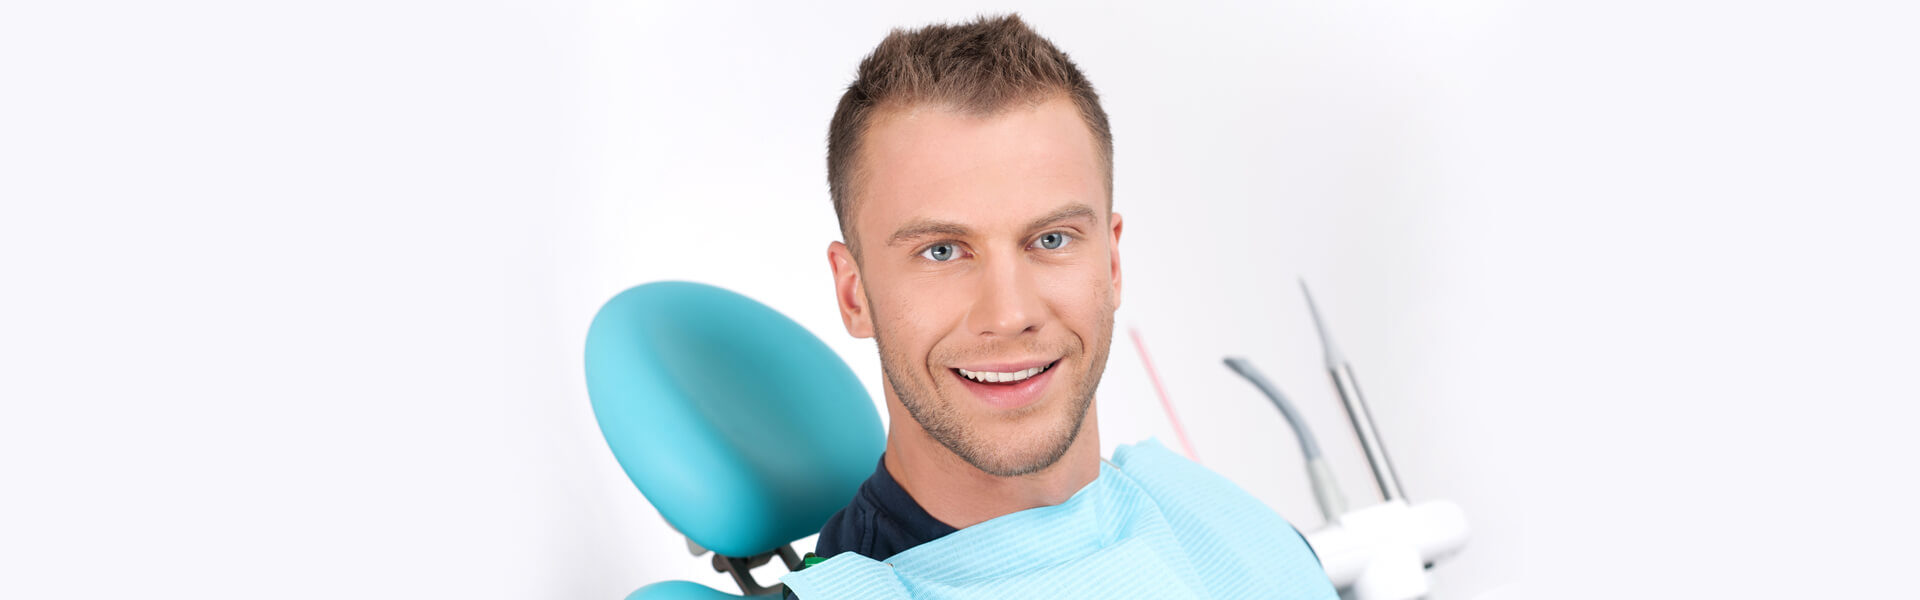 Specialty Dental Care in Concord, MA